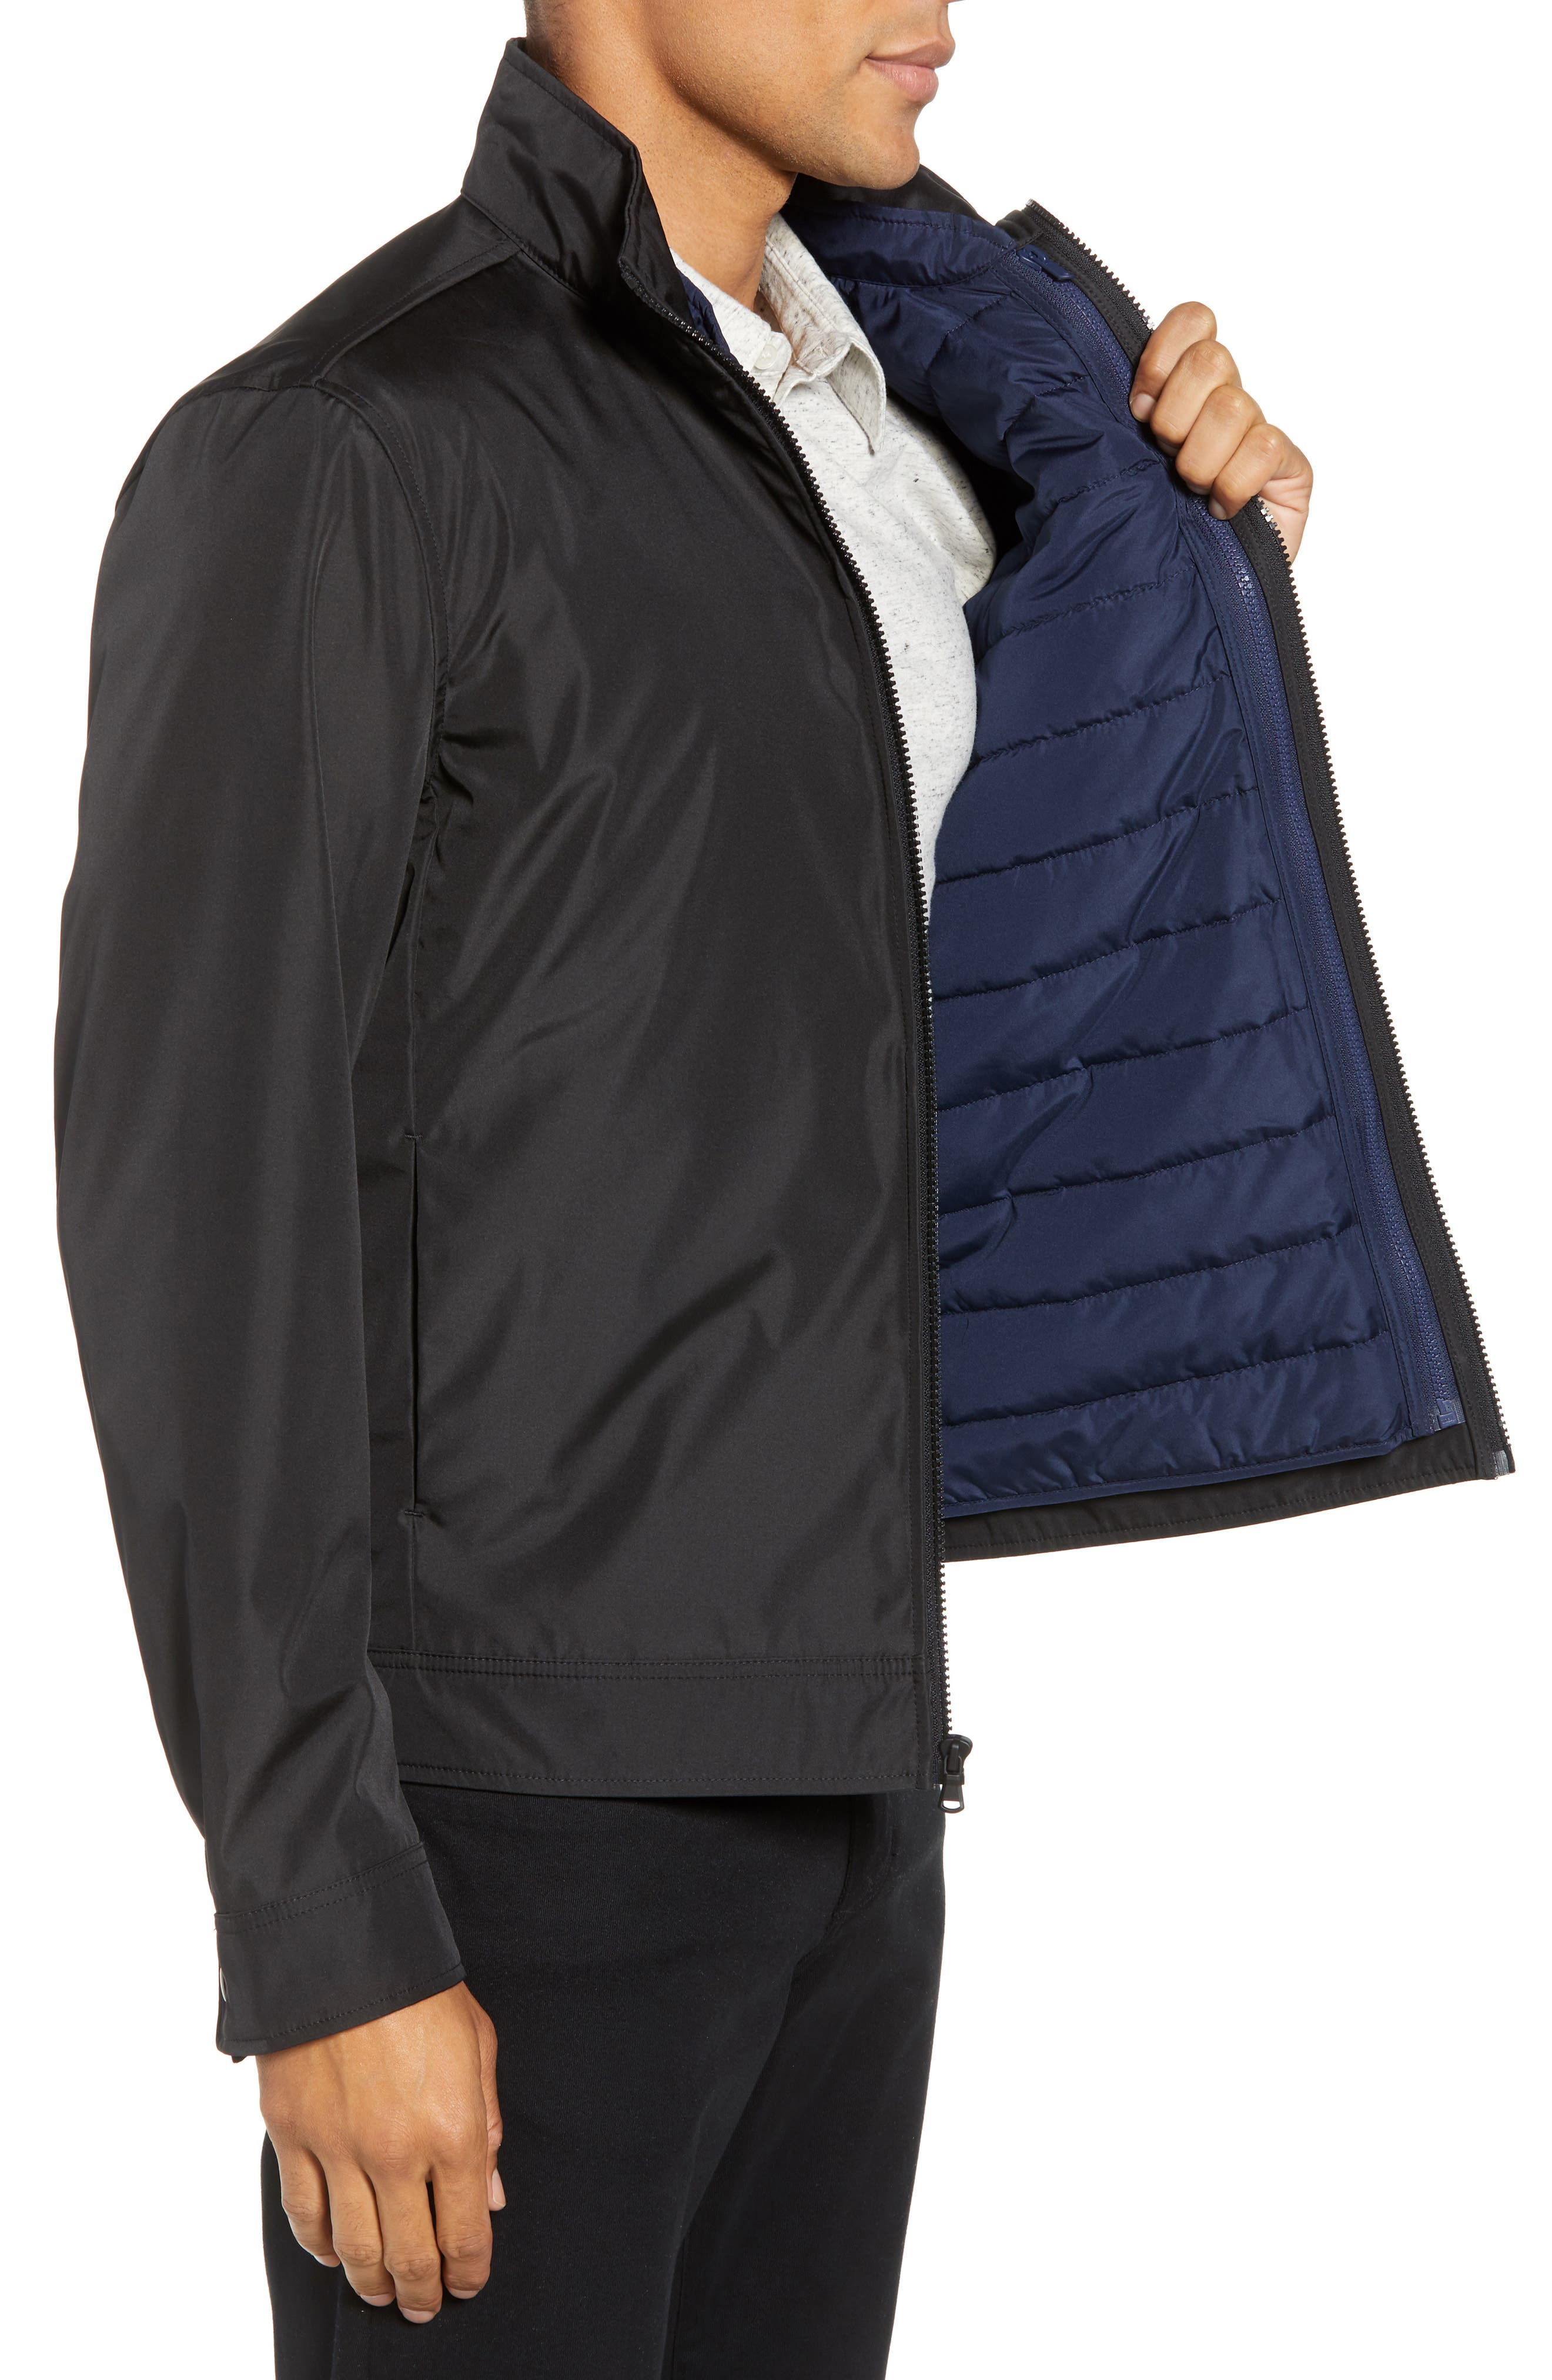 ZACHARY PRELL, Oxford 2-in-1 Jacket, Alternate thumbnail 4, color, BLACK